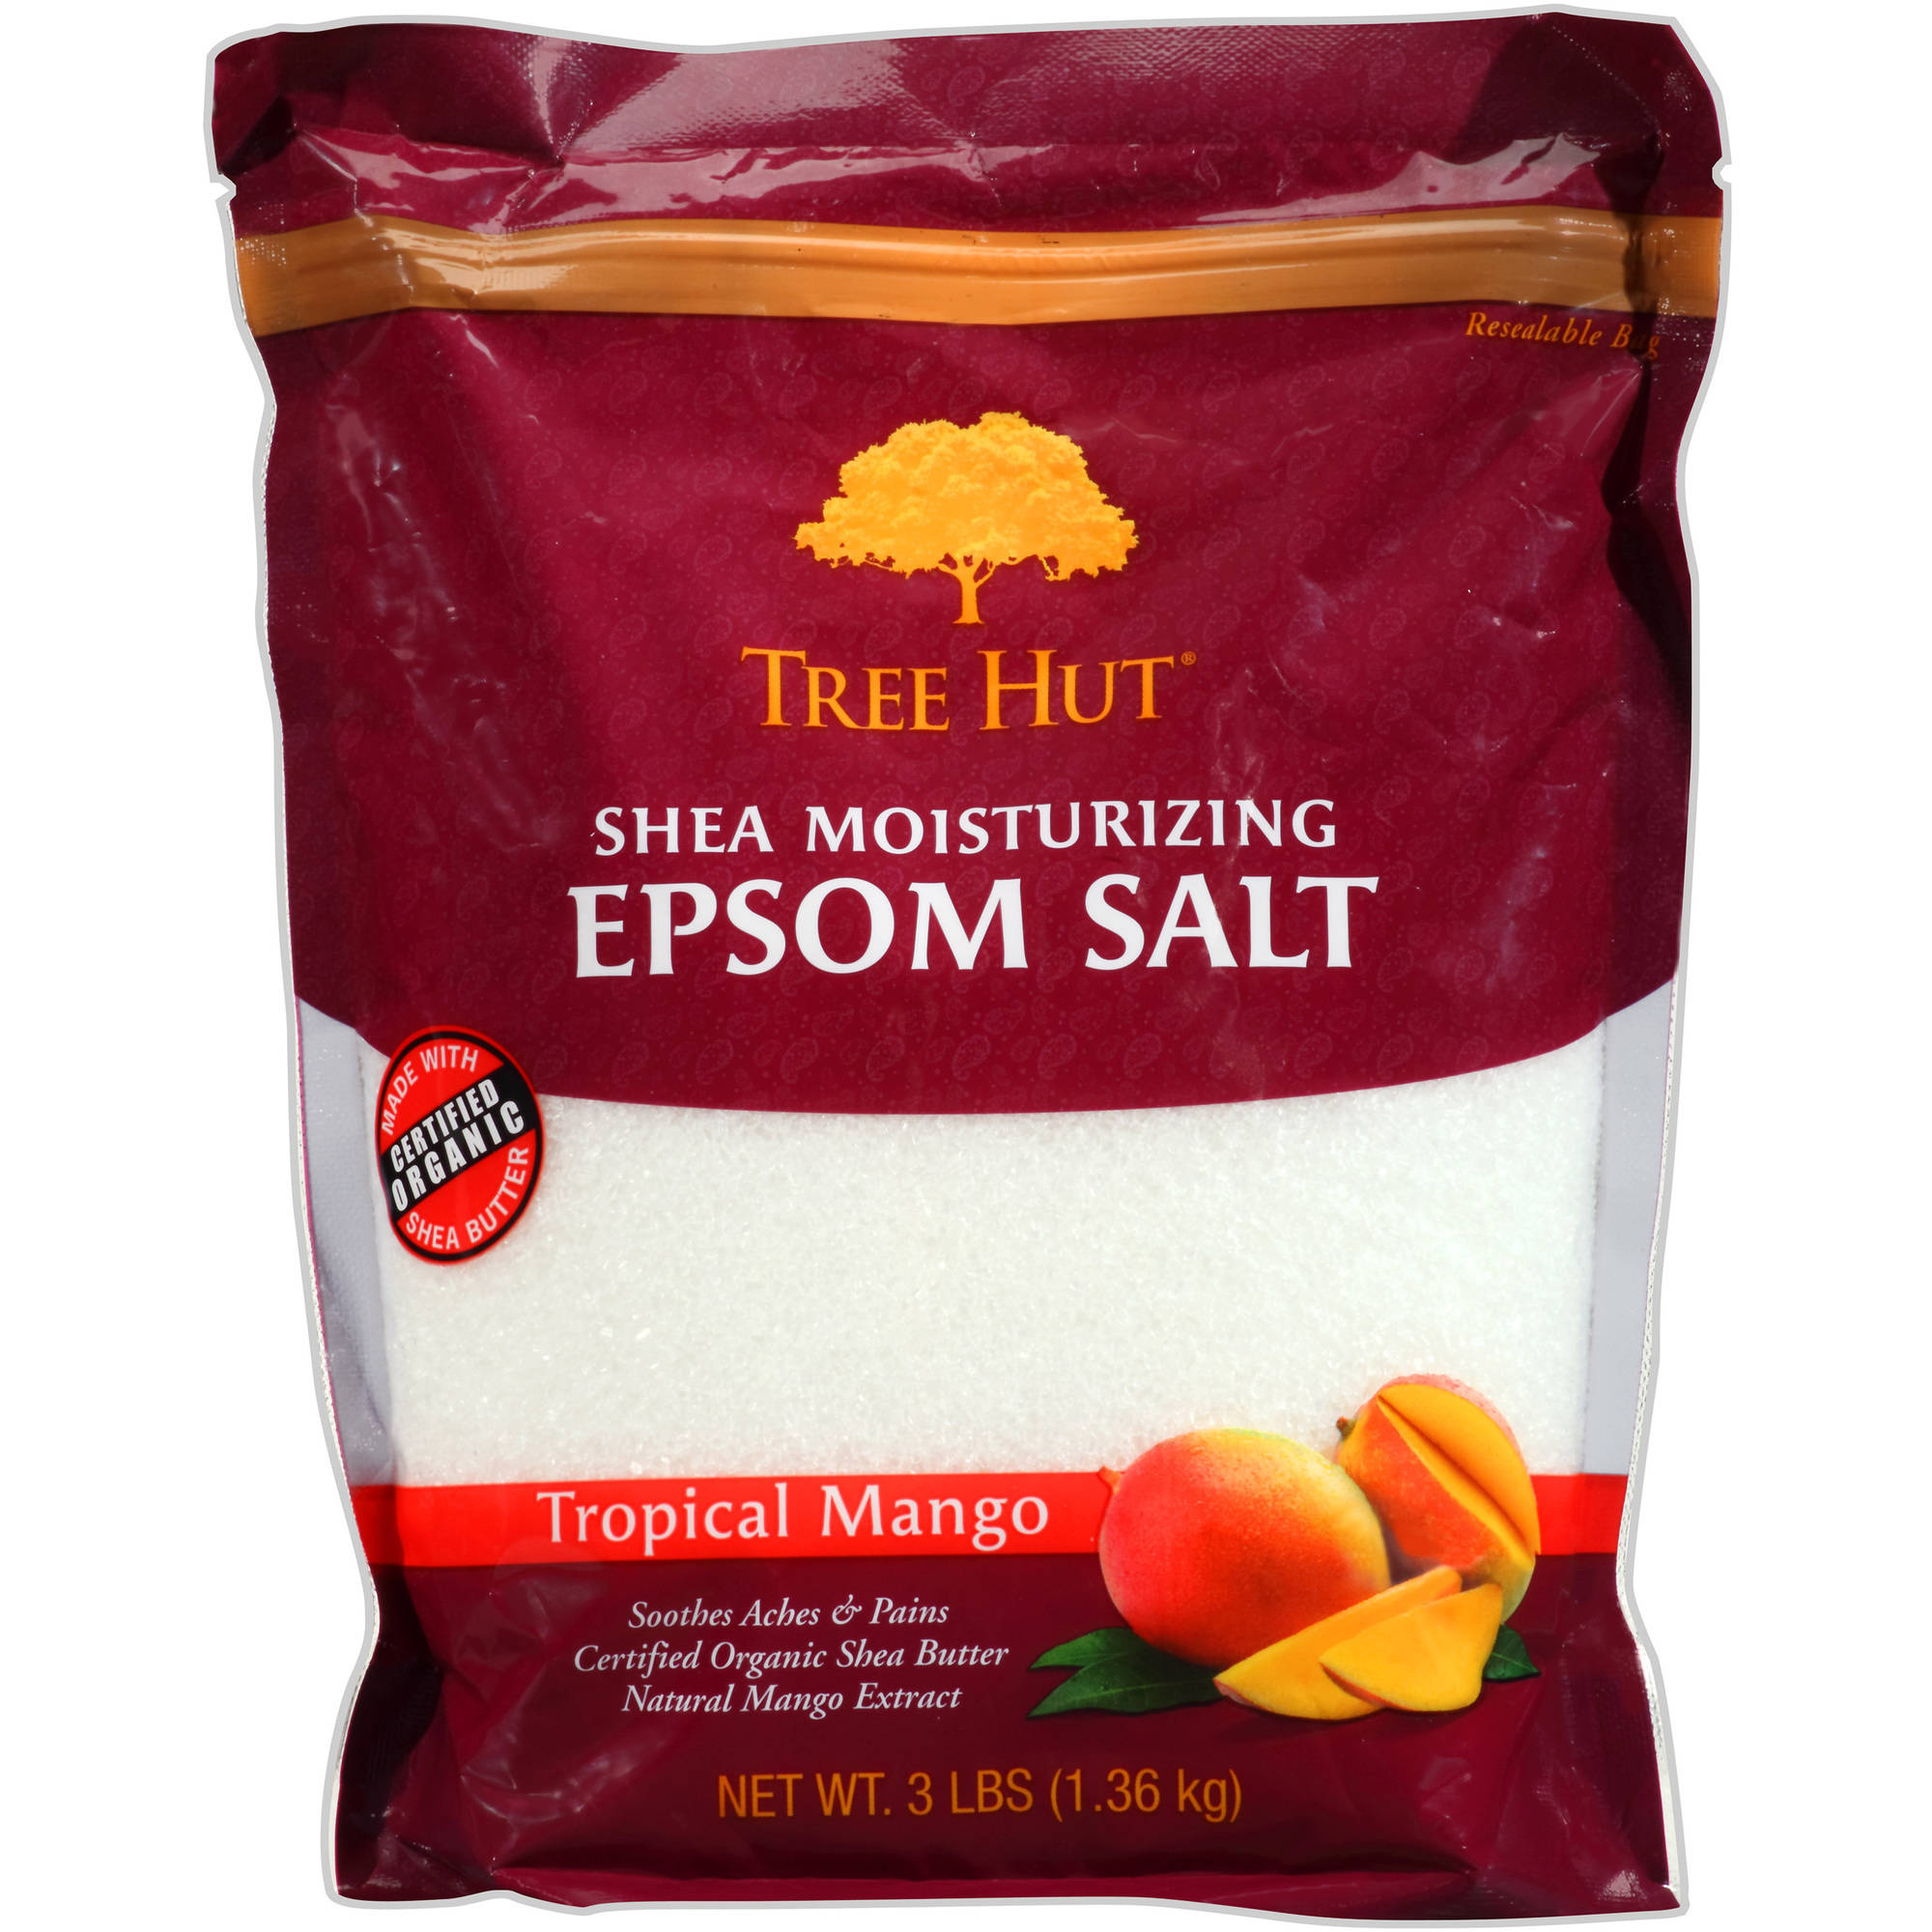 Tree Hut Shea Moisturizing Tropical Mango Epsom Salt, 3 lbs